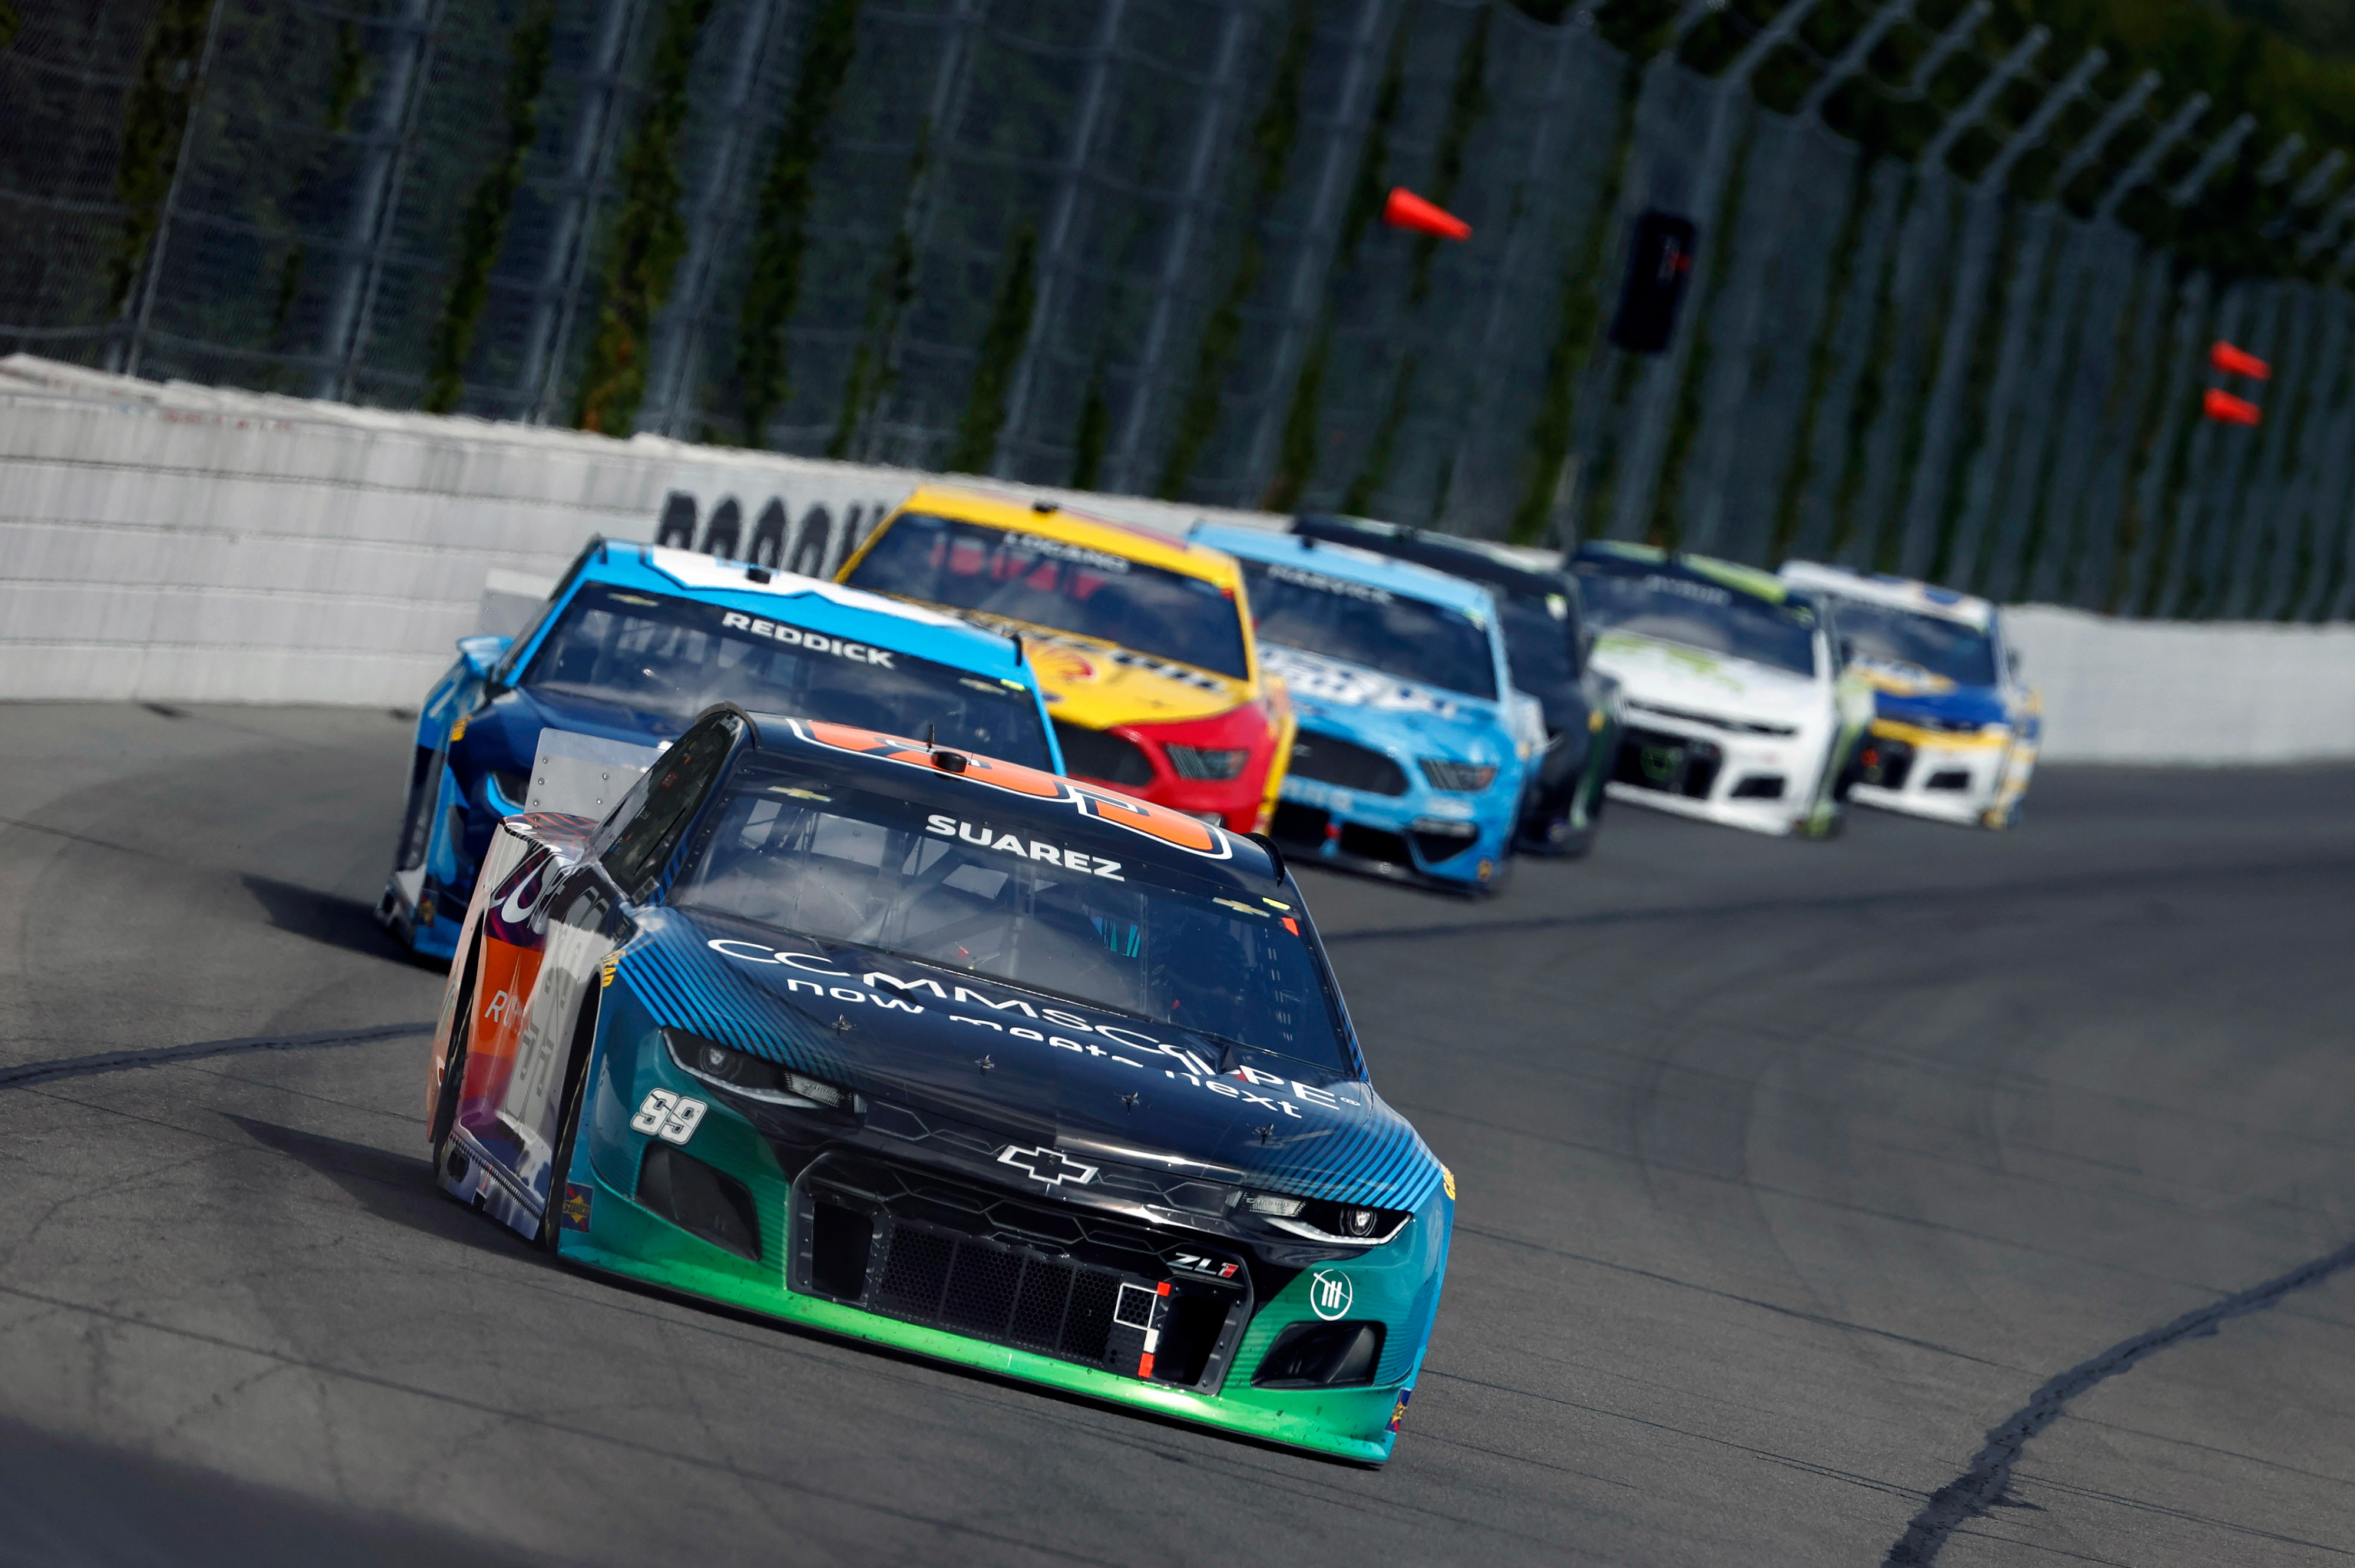 Daniel Suarez has impressed for Trackhouse Racing in NASCAR Cup